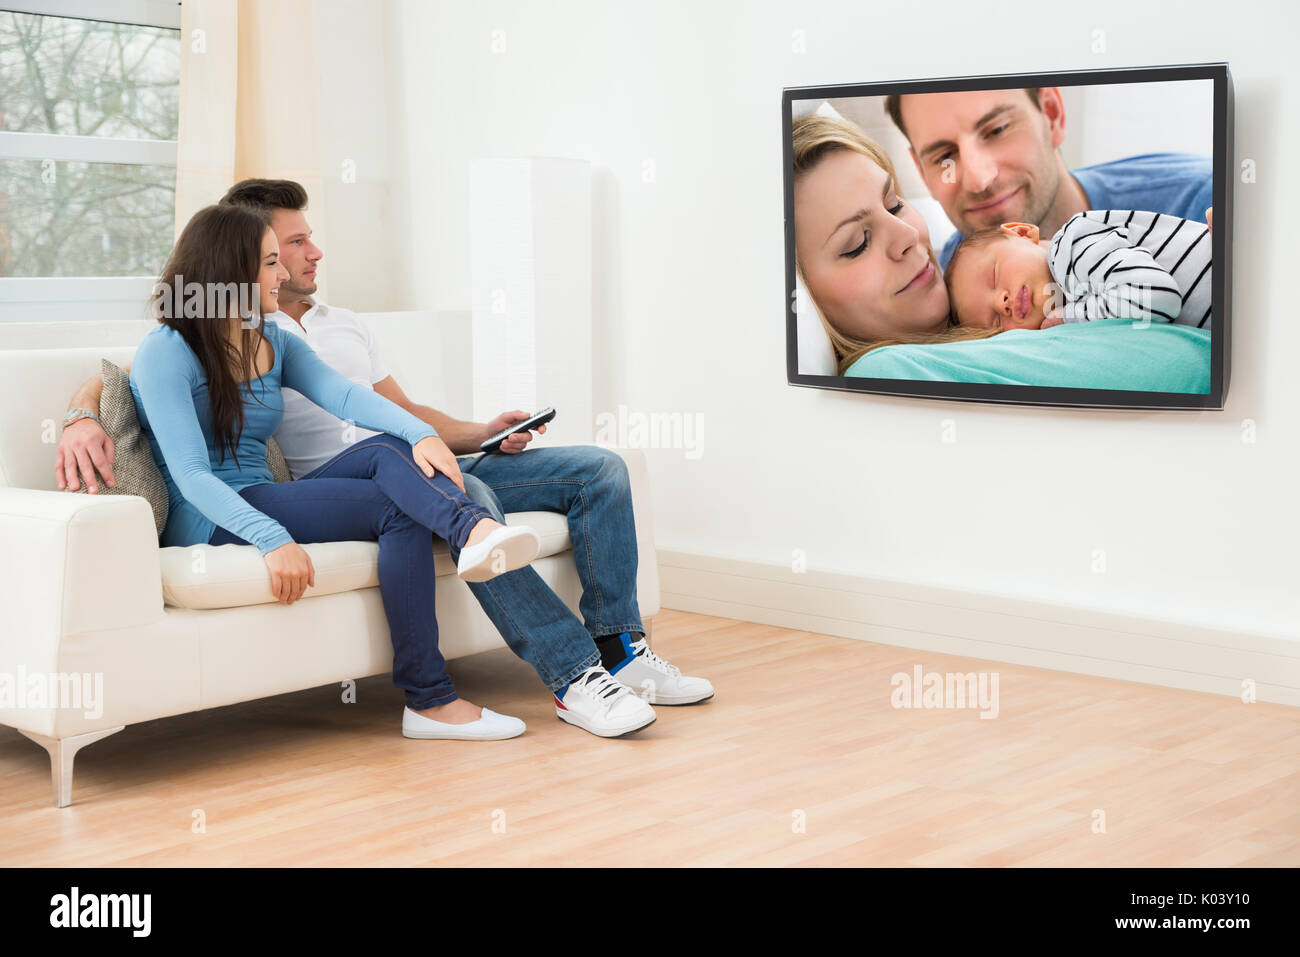 Young Couple In Livingroom Sitting On Couch Watching Television - Stock Image